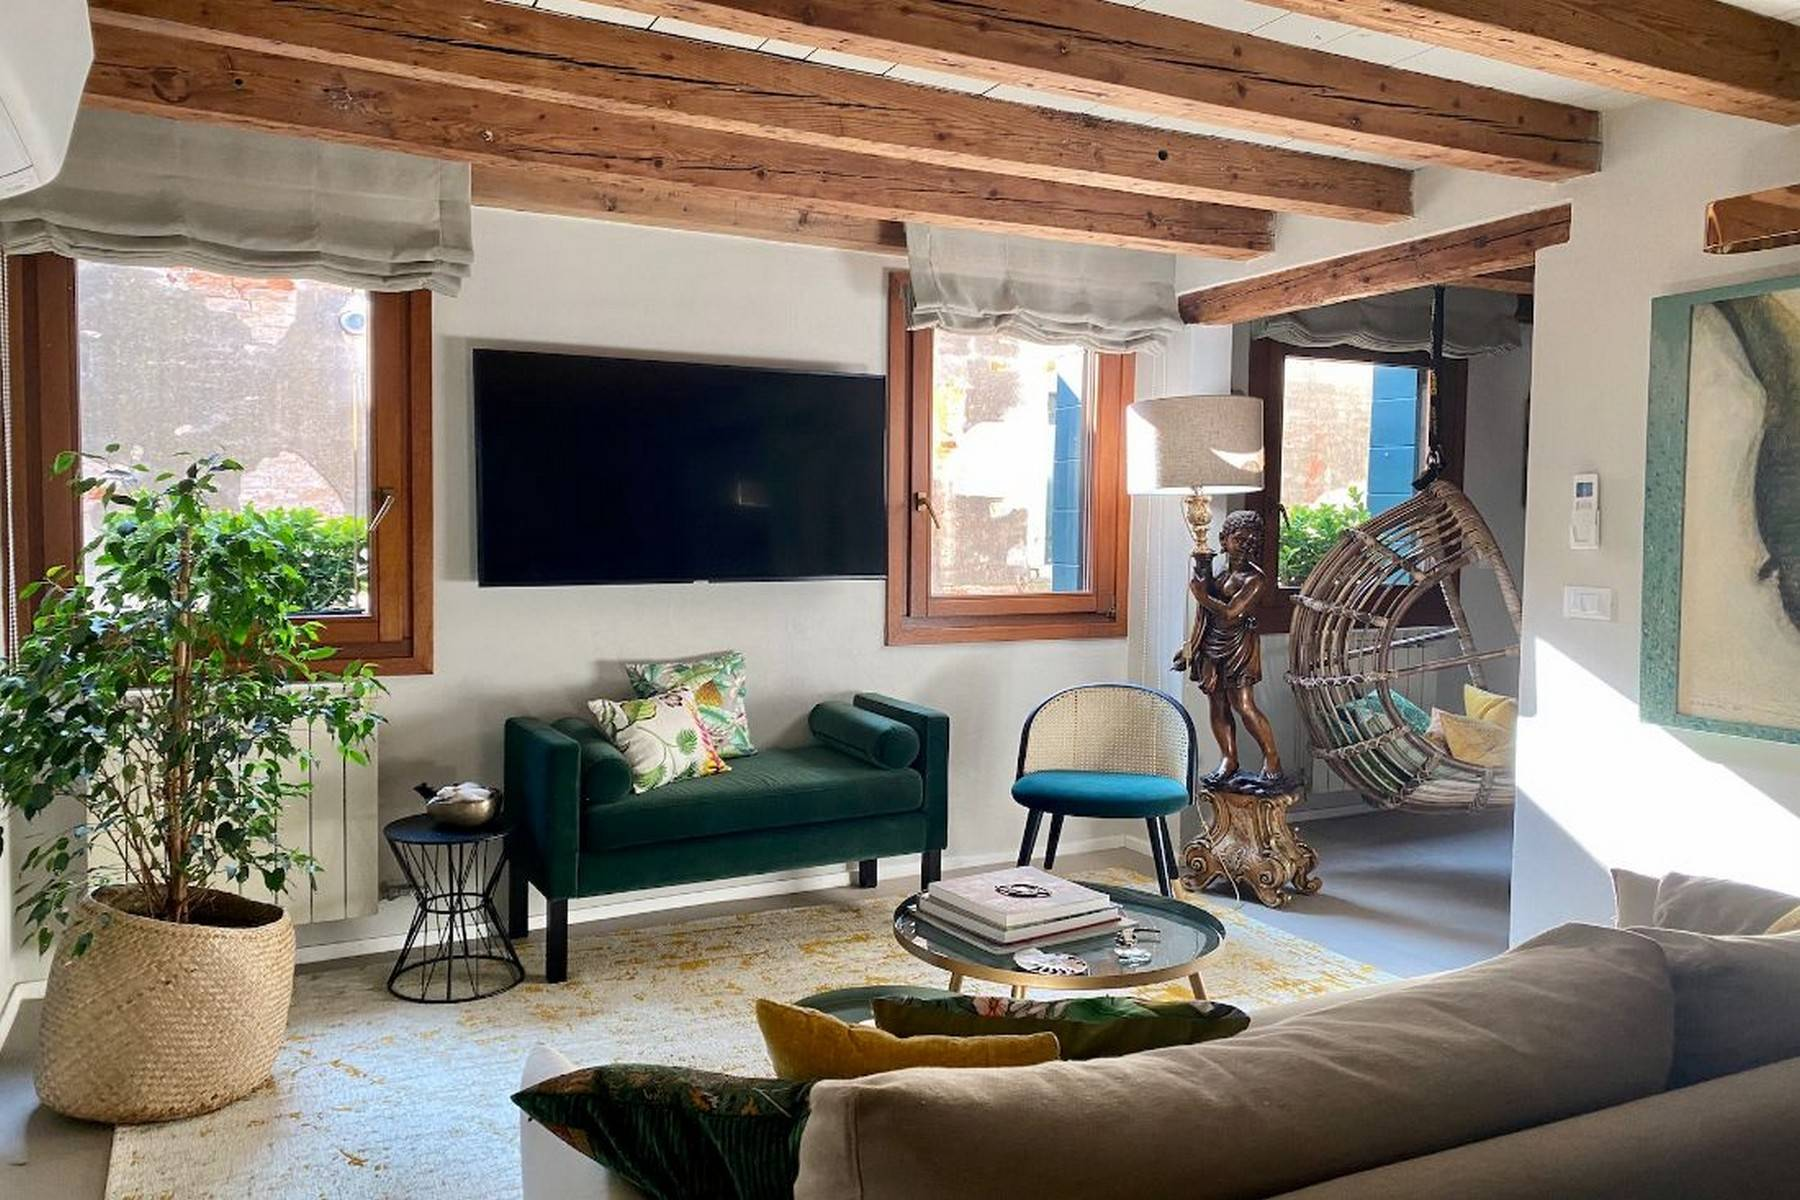 Castello design duplex with charming roof terrace - 4